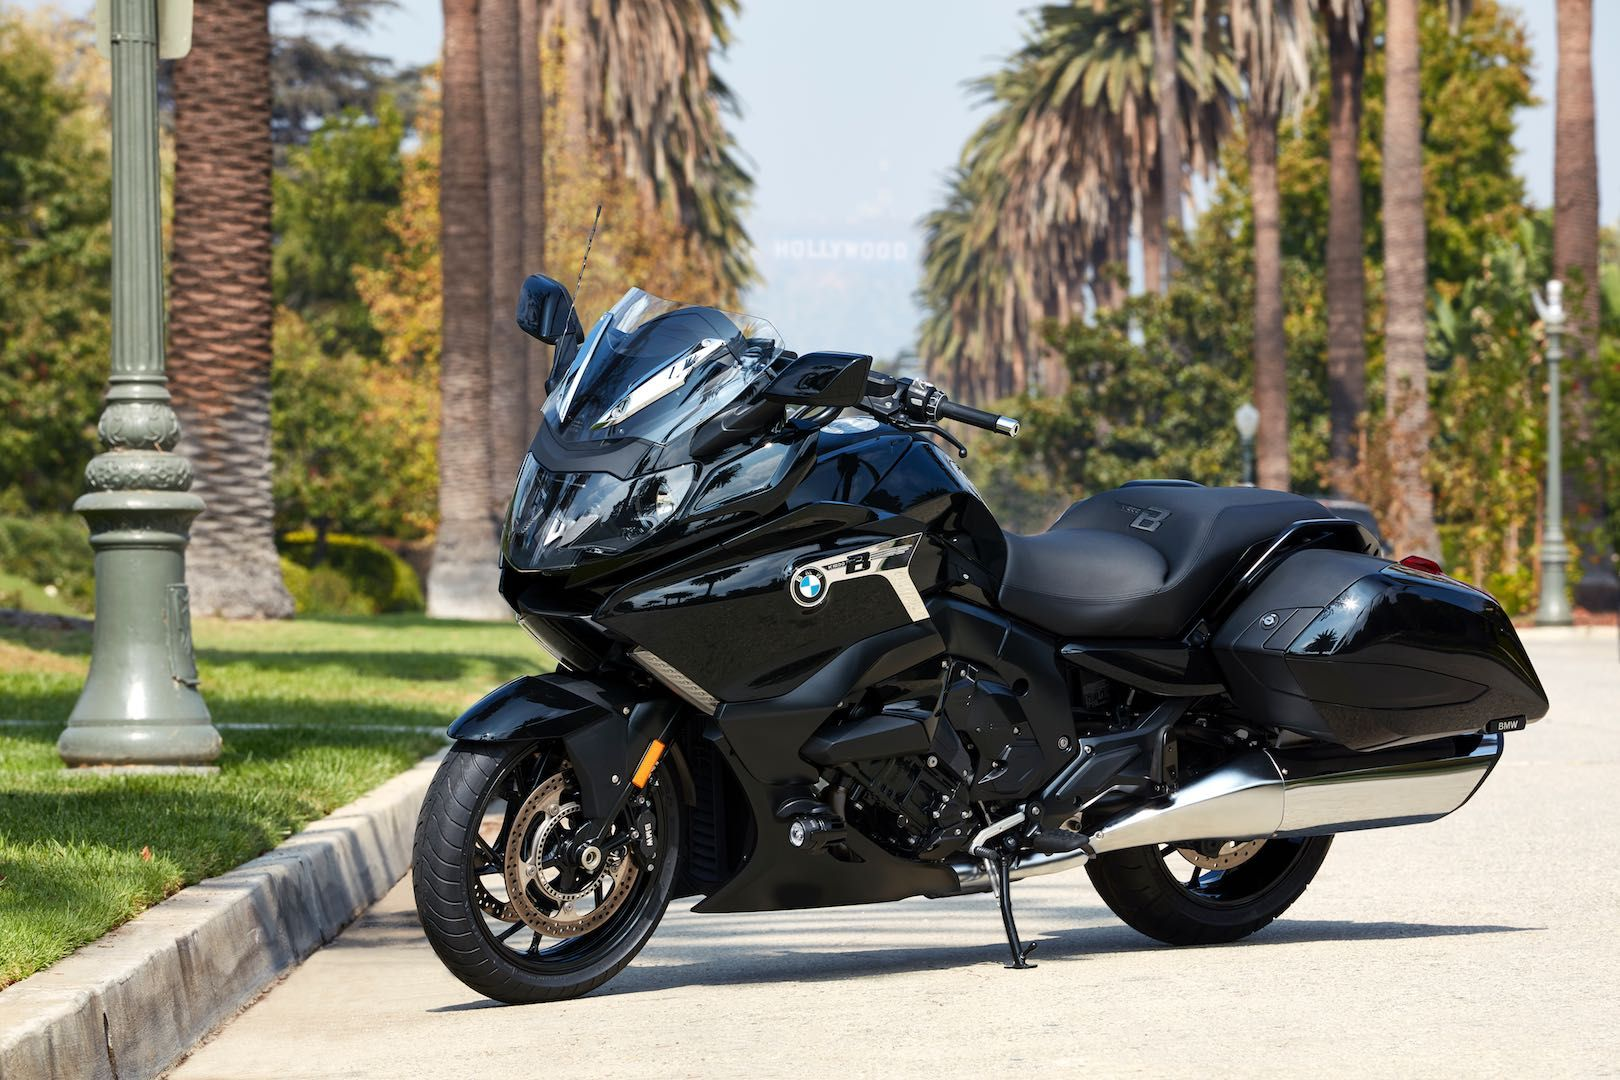 2018 Bmw K 1600 B Bagger Price Announced For Usa Bmw Motorrad Touring Motorcycles Bmw